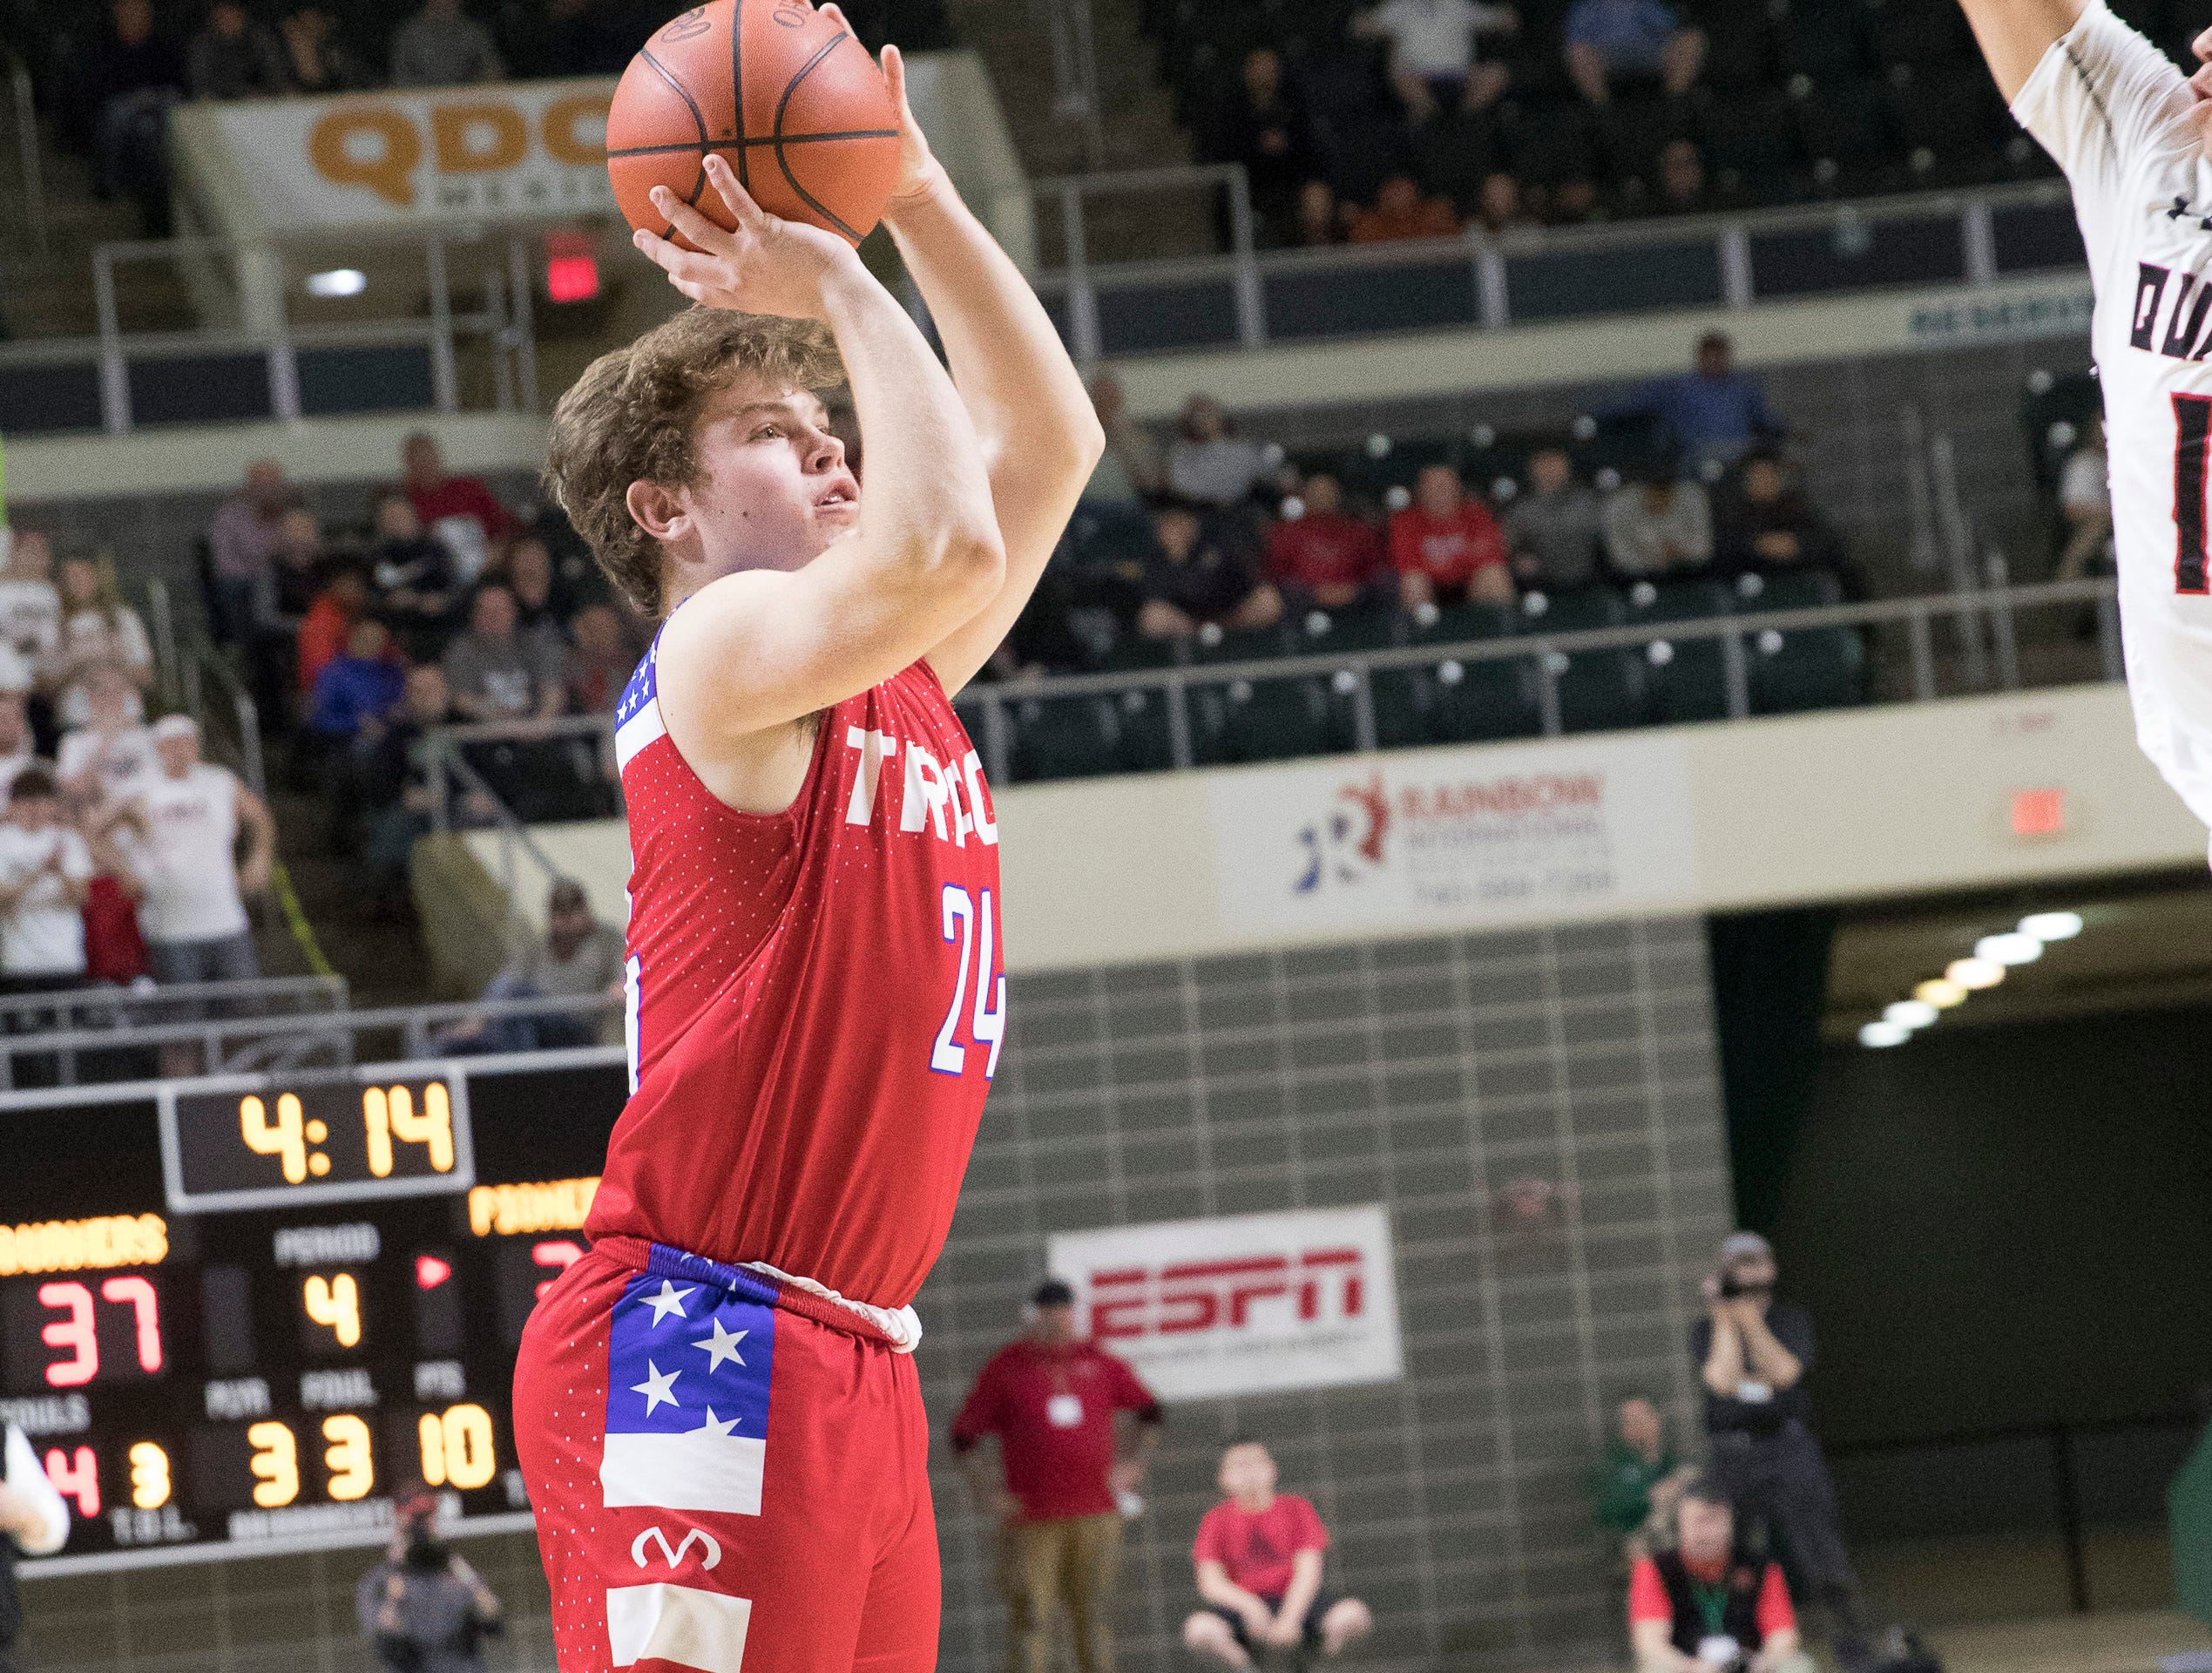 Senior Chad Ison attempts a jump shot during the second half of Zane Trace's Division II regional semifinal game against New Philadelphia at Ohio University's Convocation Center on March 13, 2019.